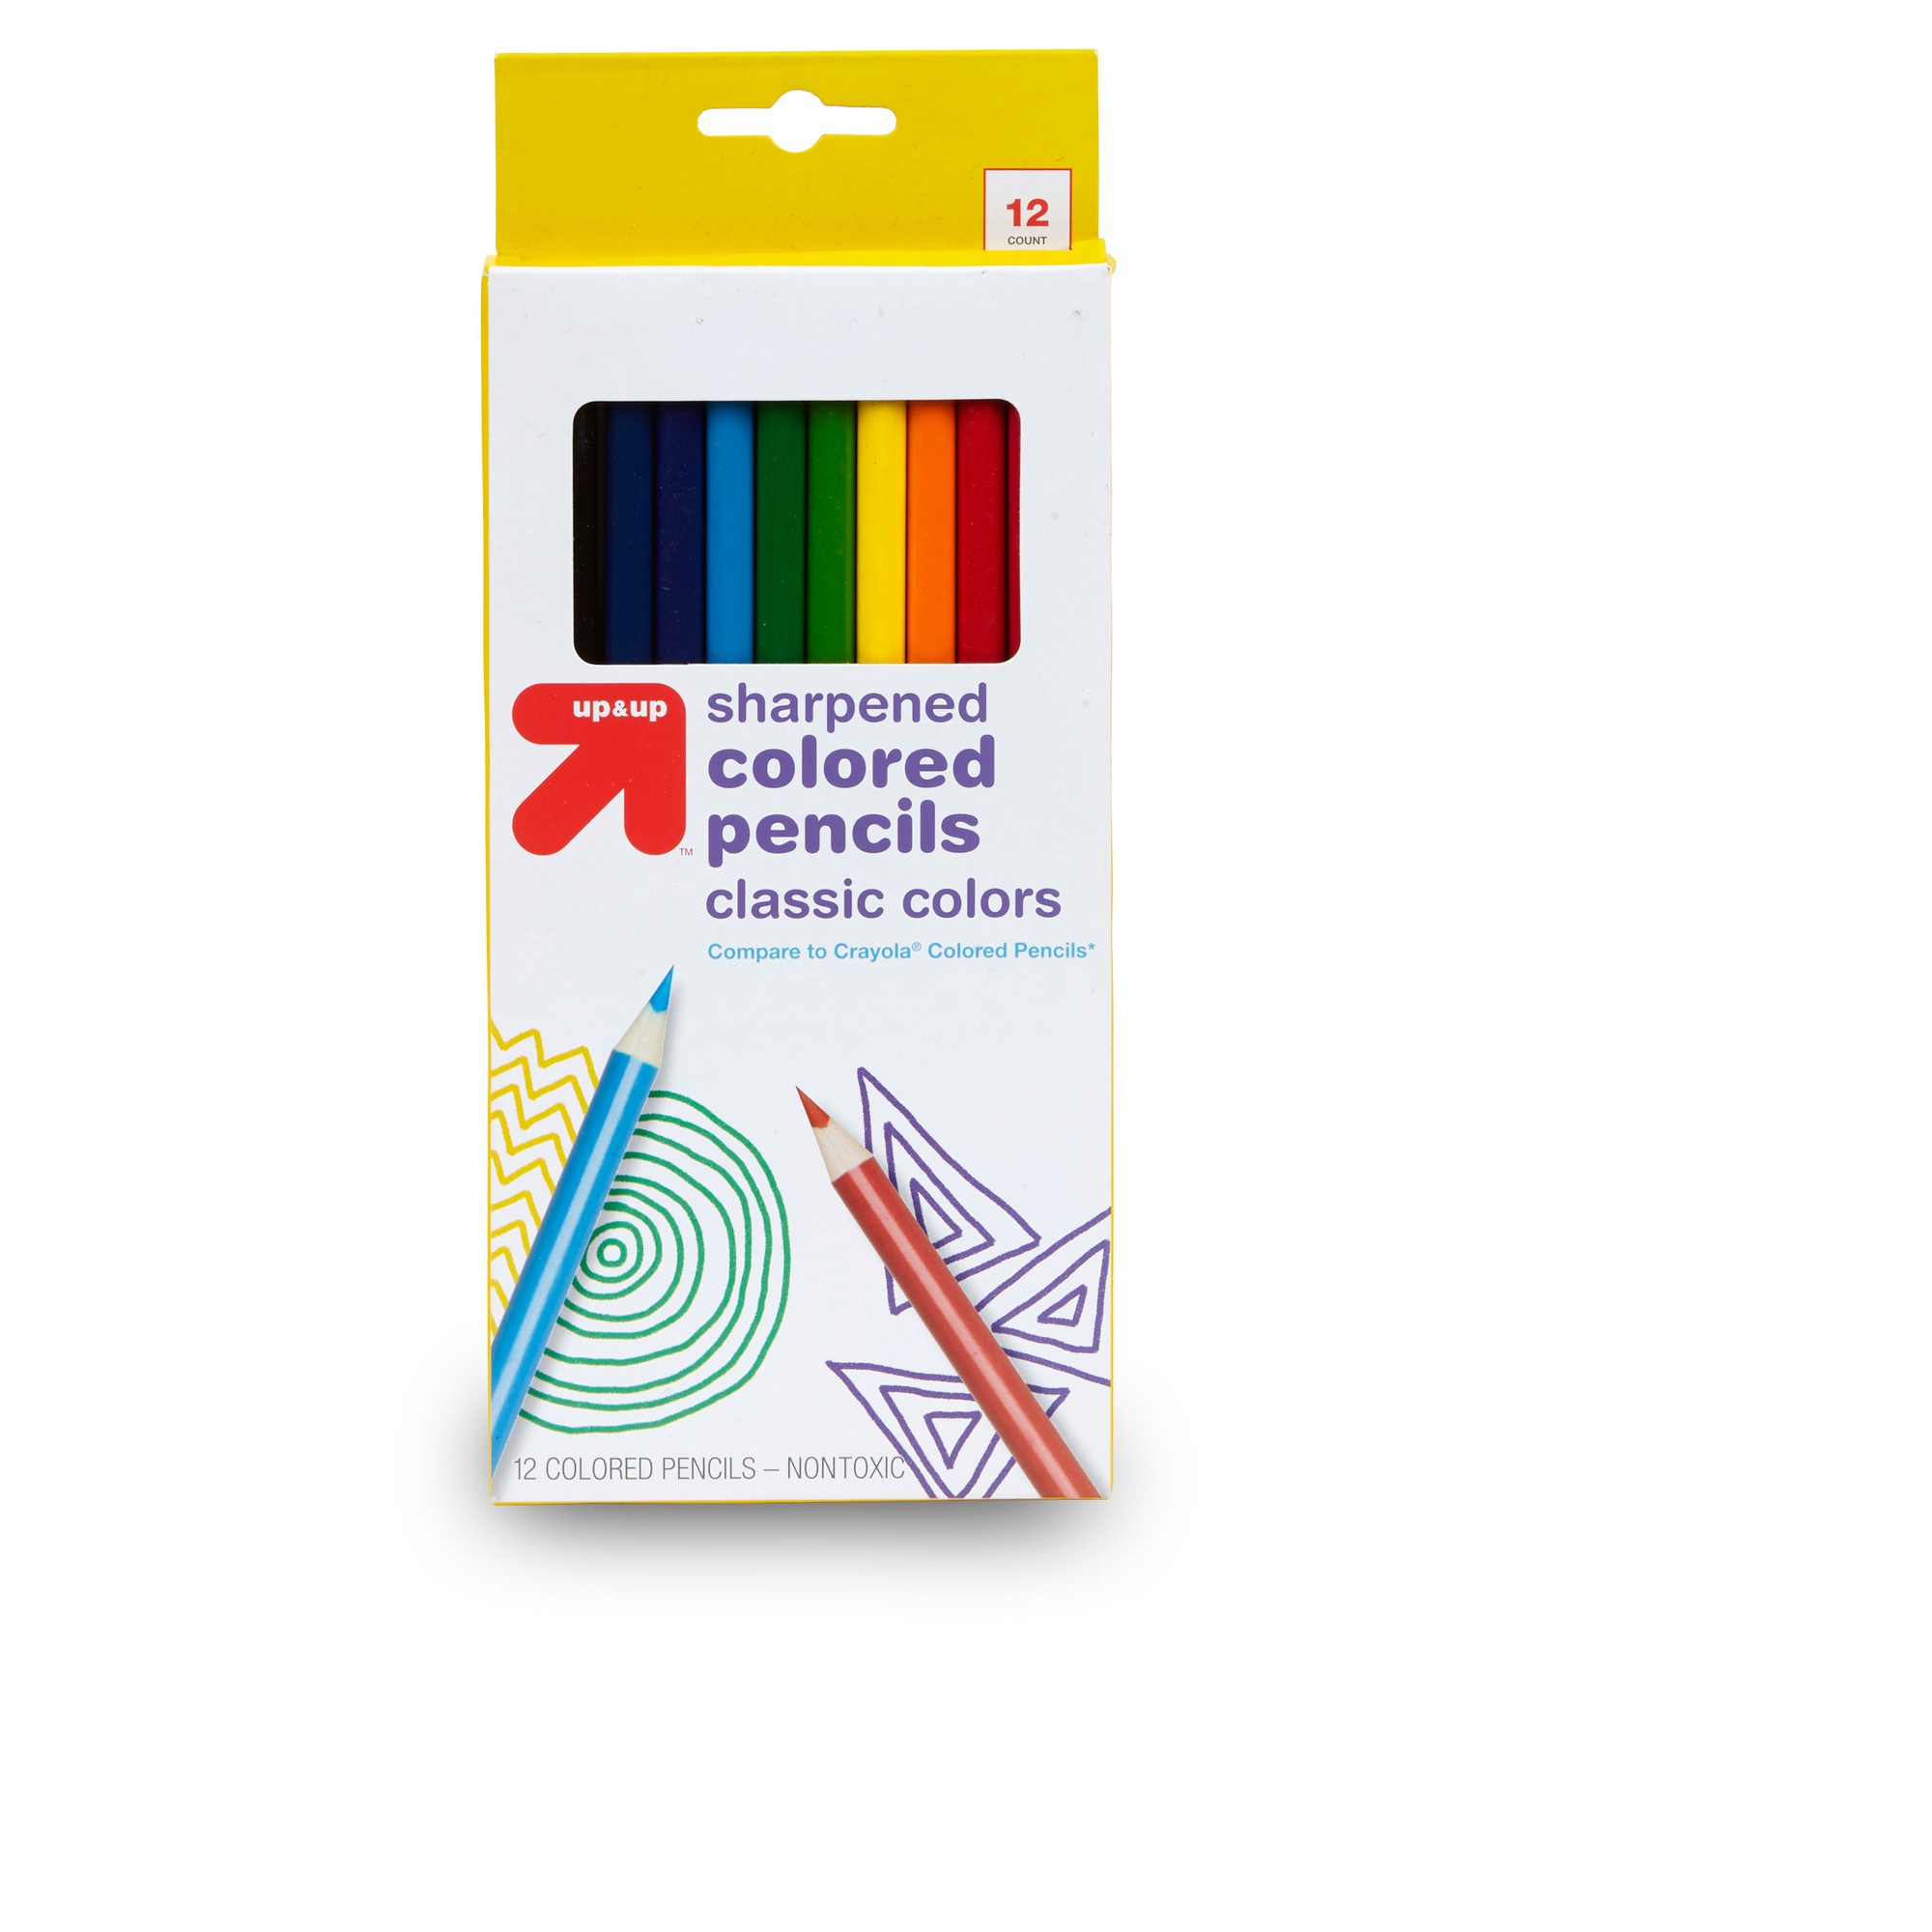 Colored Pencils 12ct Up Up Colored Pencils Crayola Colored